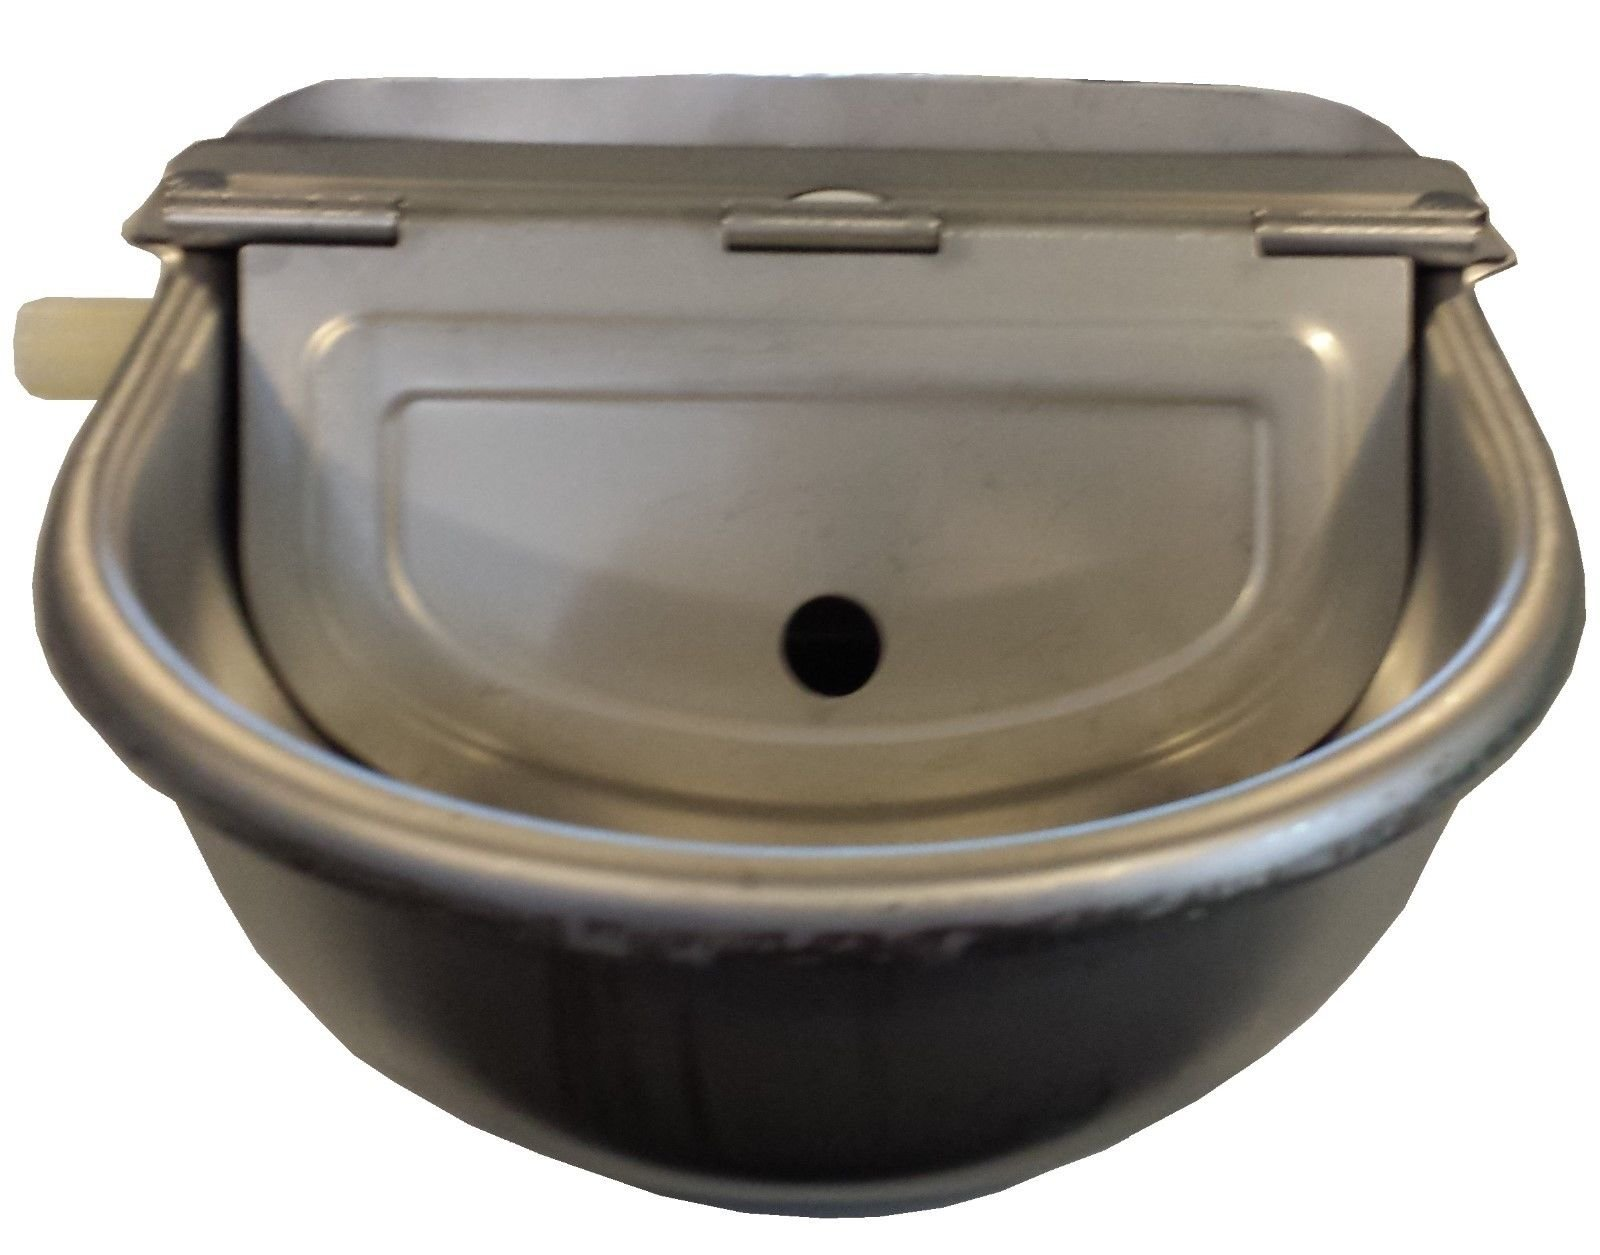 RITE FARM PRODUCTS STAINLESS STEEL AUTOMATIC STOCK WATERER HORSE CATTLE GOAT SHEEP HOG PIG LAMB LIVESTOCK DRINKER BOWL by Rite Farm Products (Image #3)